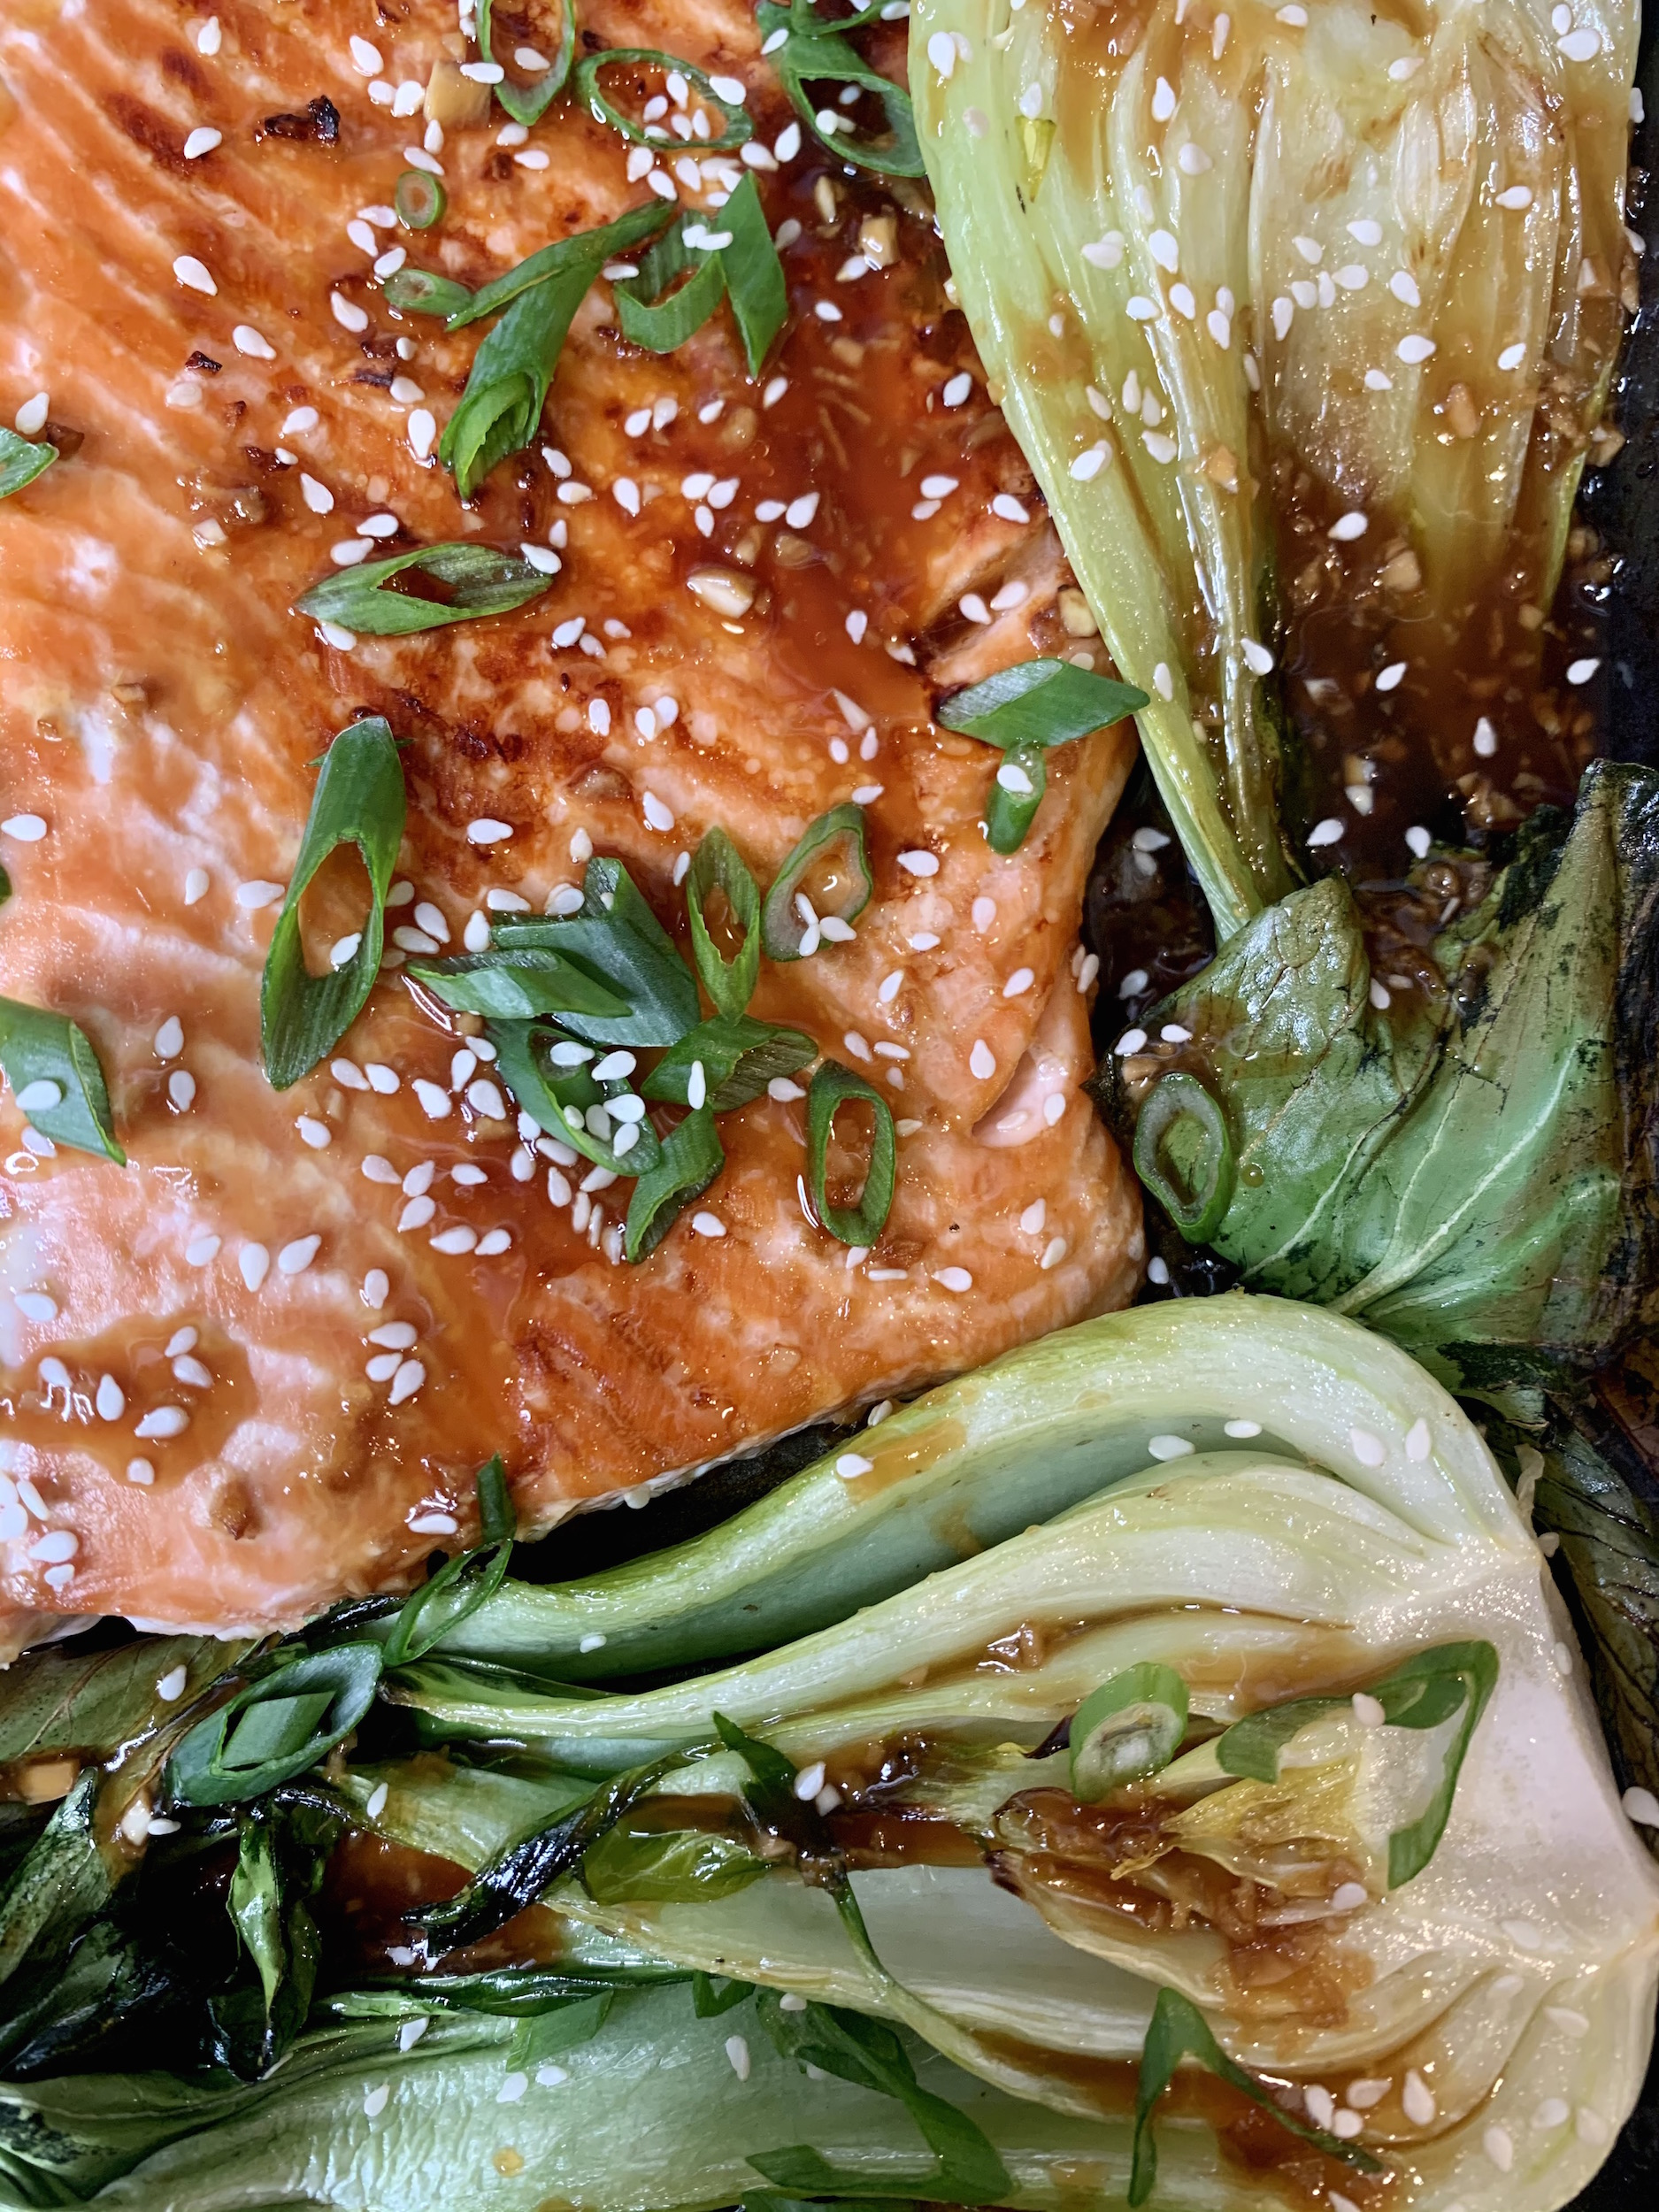 Close up of teriyaki glazed salmon with baby bok choy on a sheet pan, garnished with scallions and sesame seeds